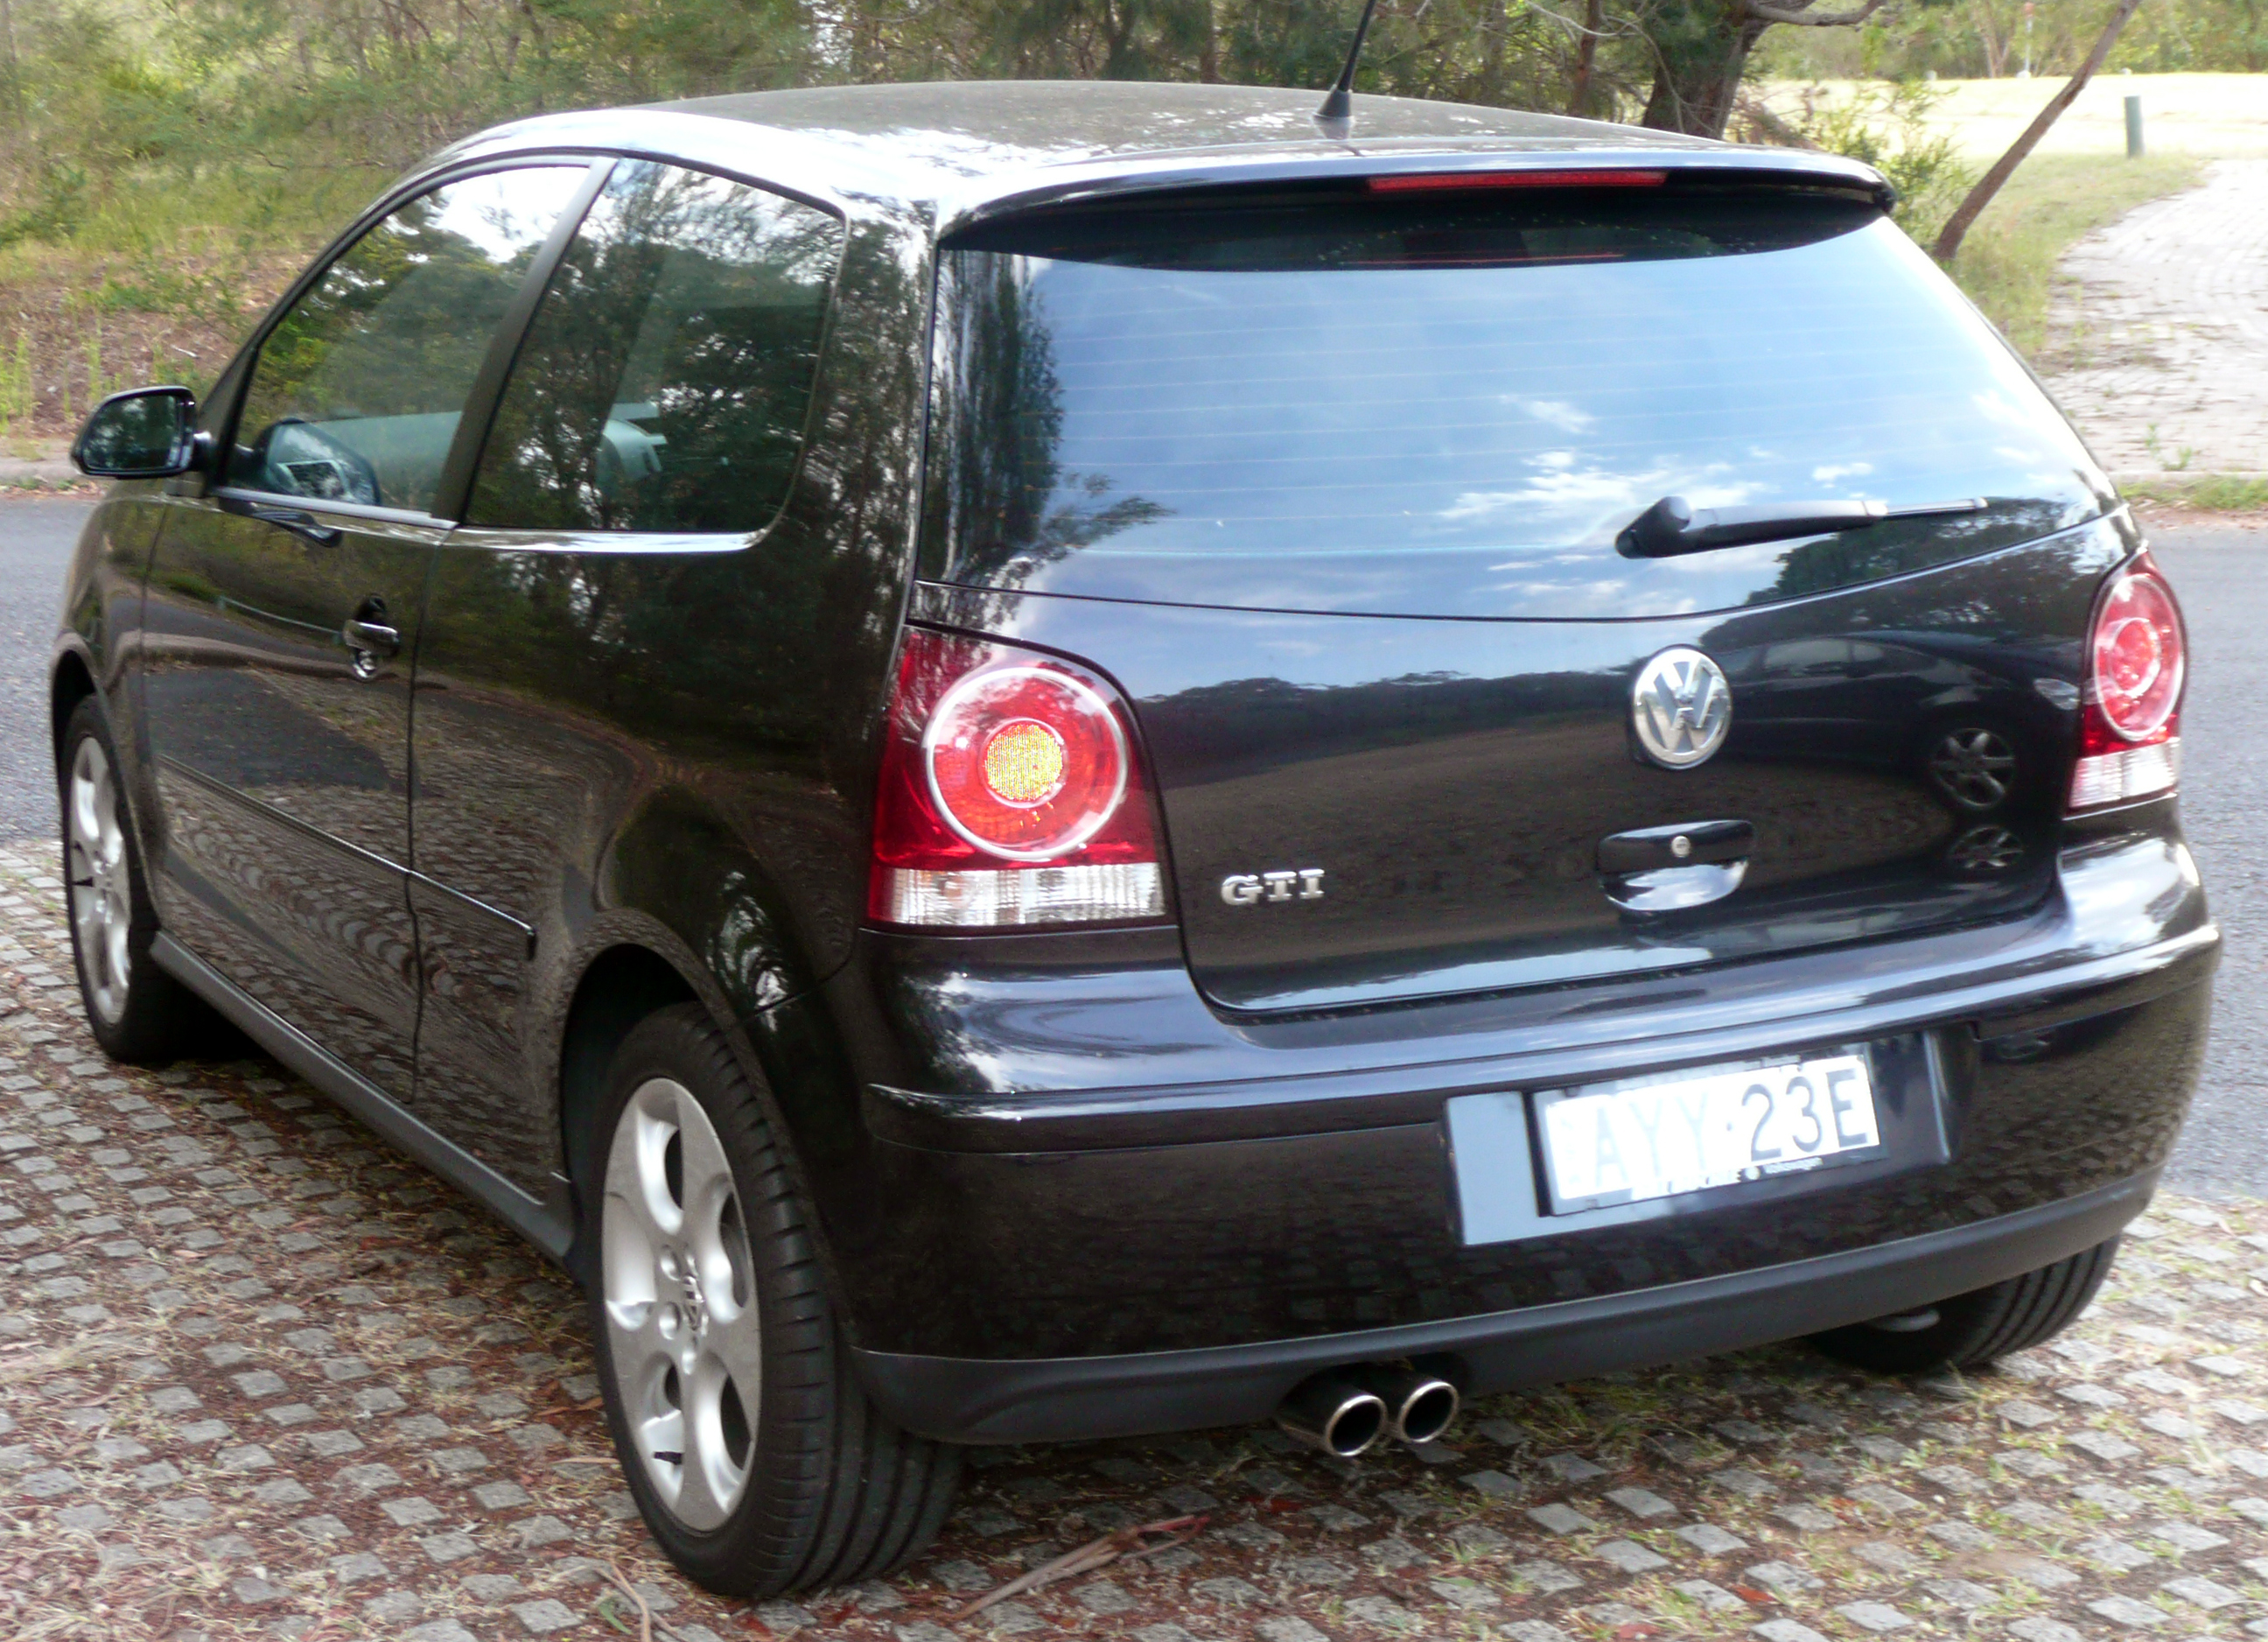 file 2005 2008 volkswagen polo 9n3 gti 3 door hatchback. Black Bedroom Furniture Sets. Home Design Ideas